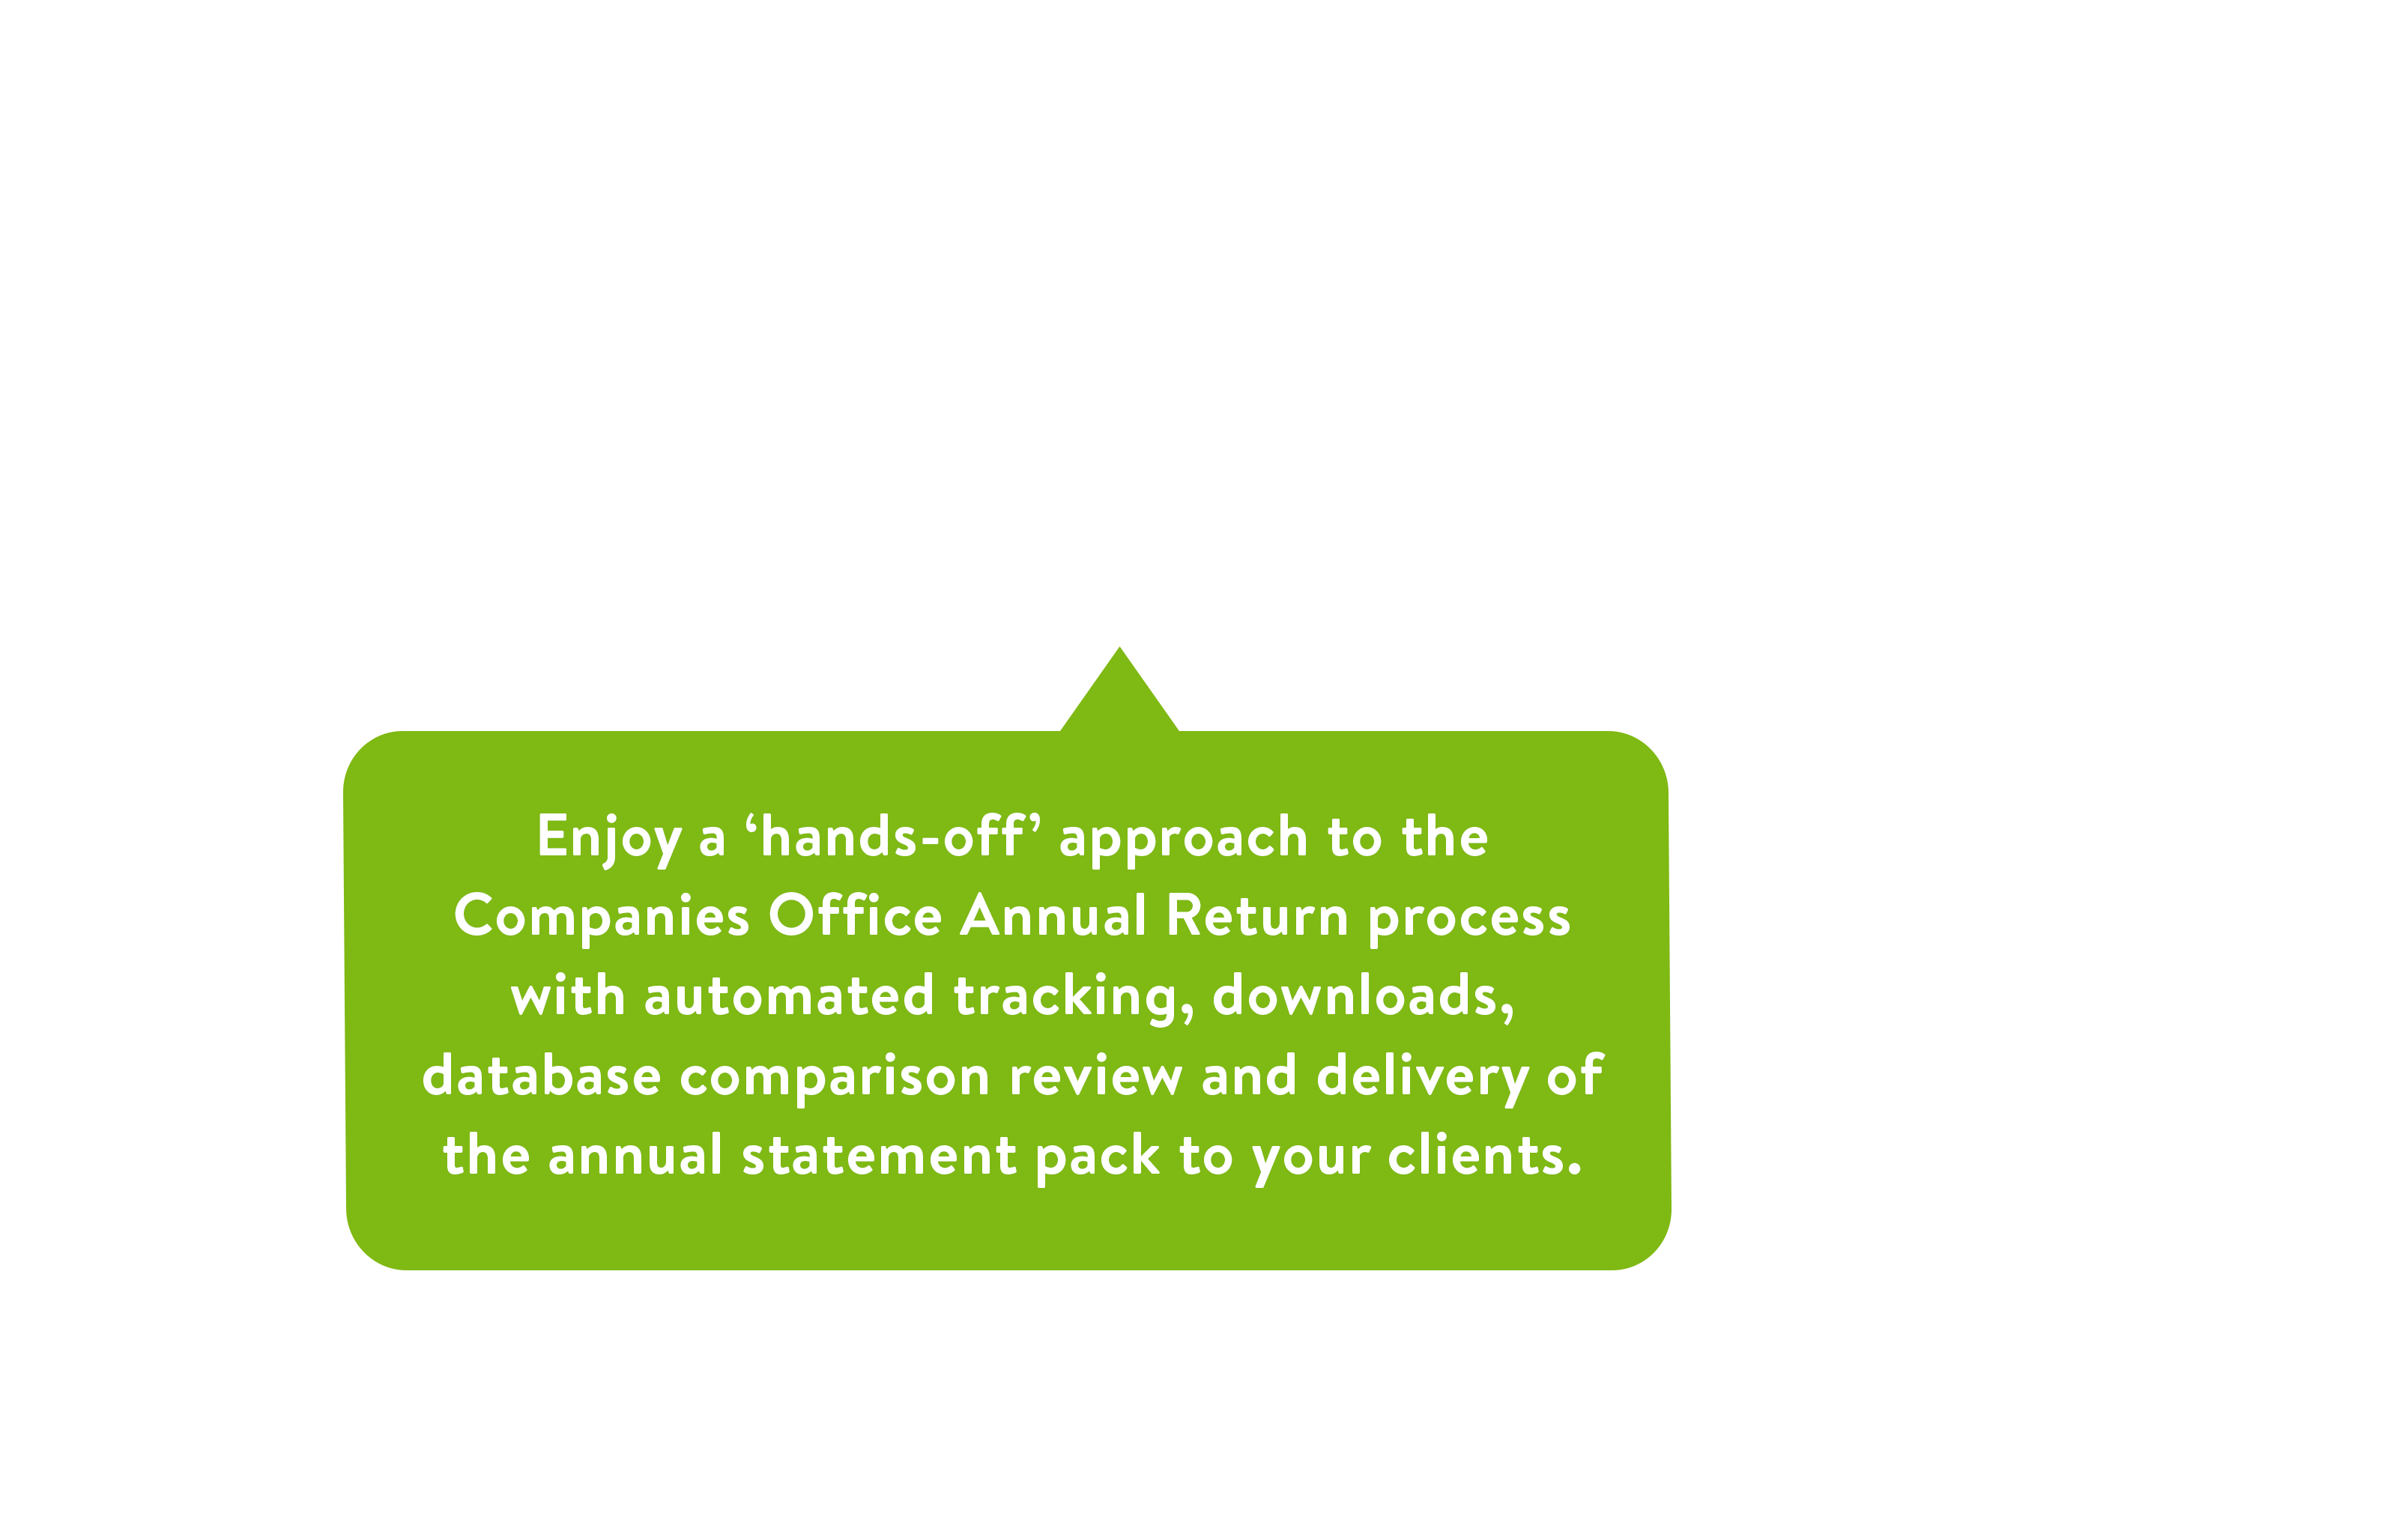 CAS 360 Annual Return Process